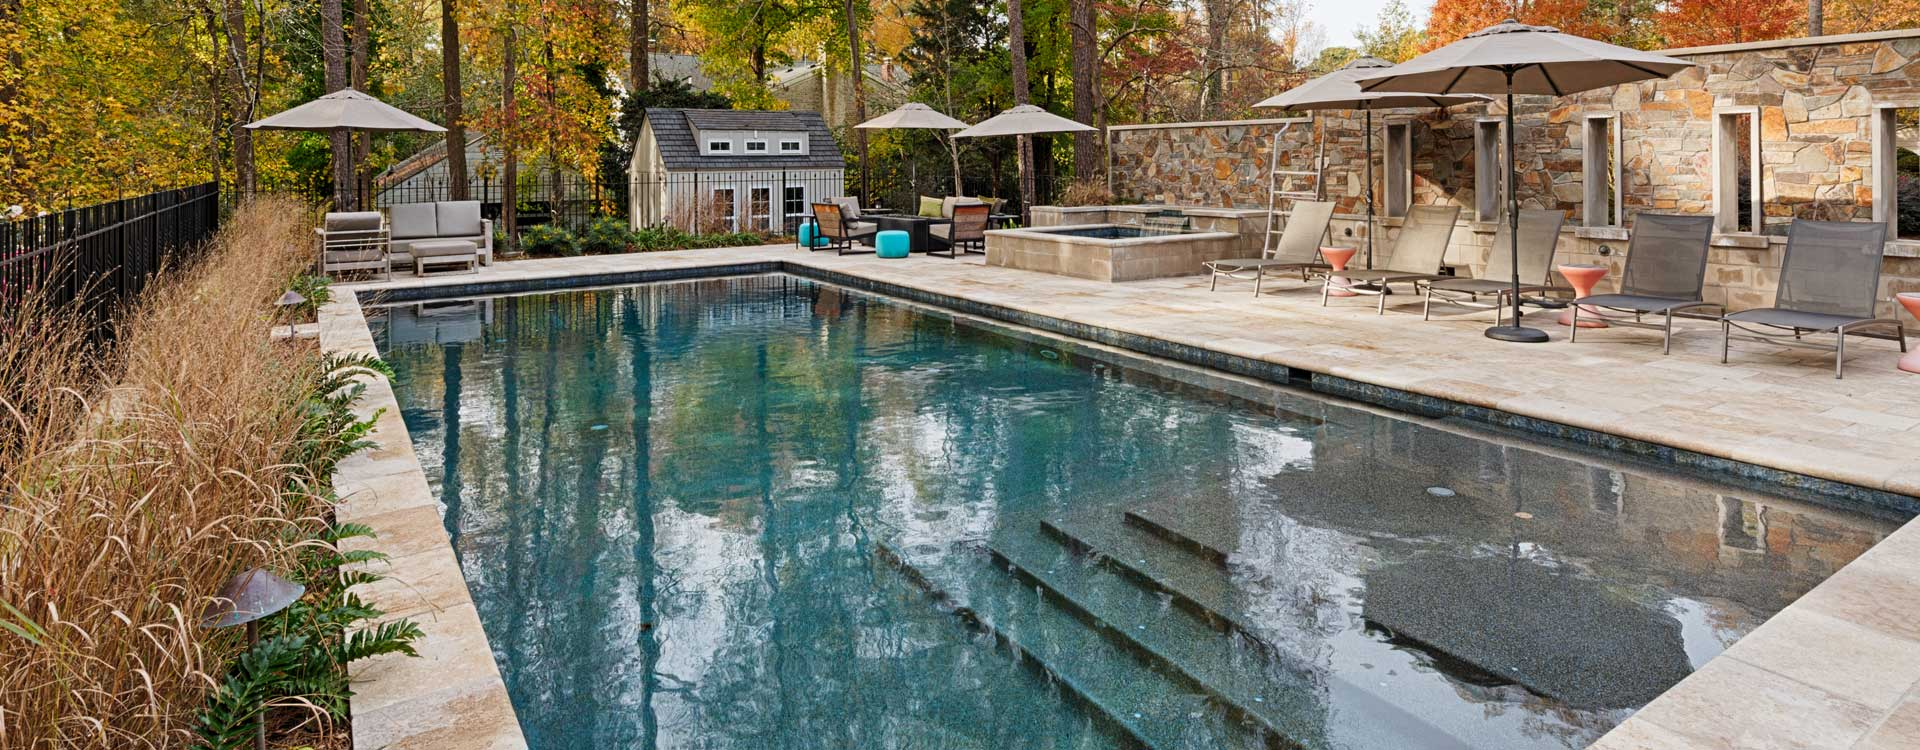 Pool Renovation With Blue Water And Outdoor Furniture Built By Covington Contracting Luxury Custom Homebuilder